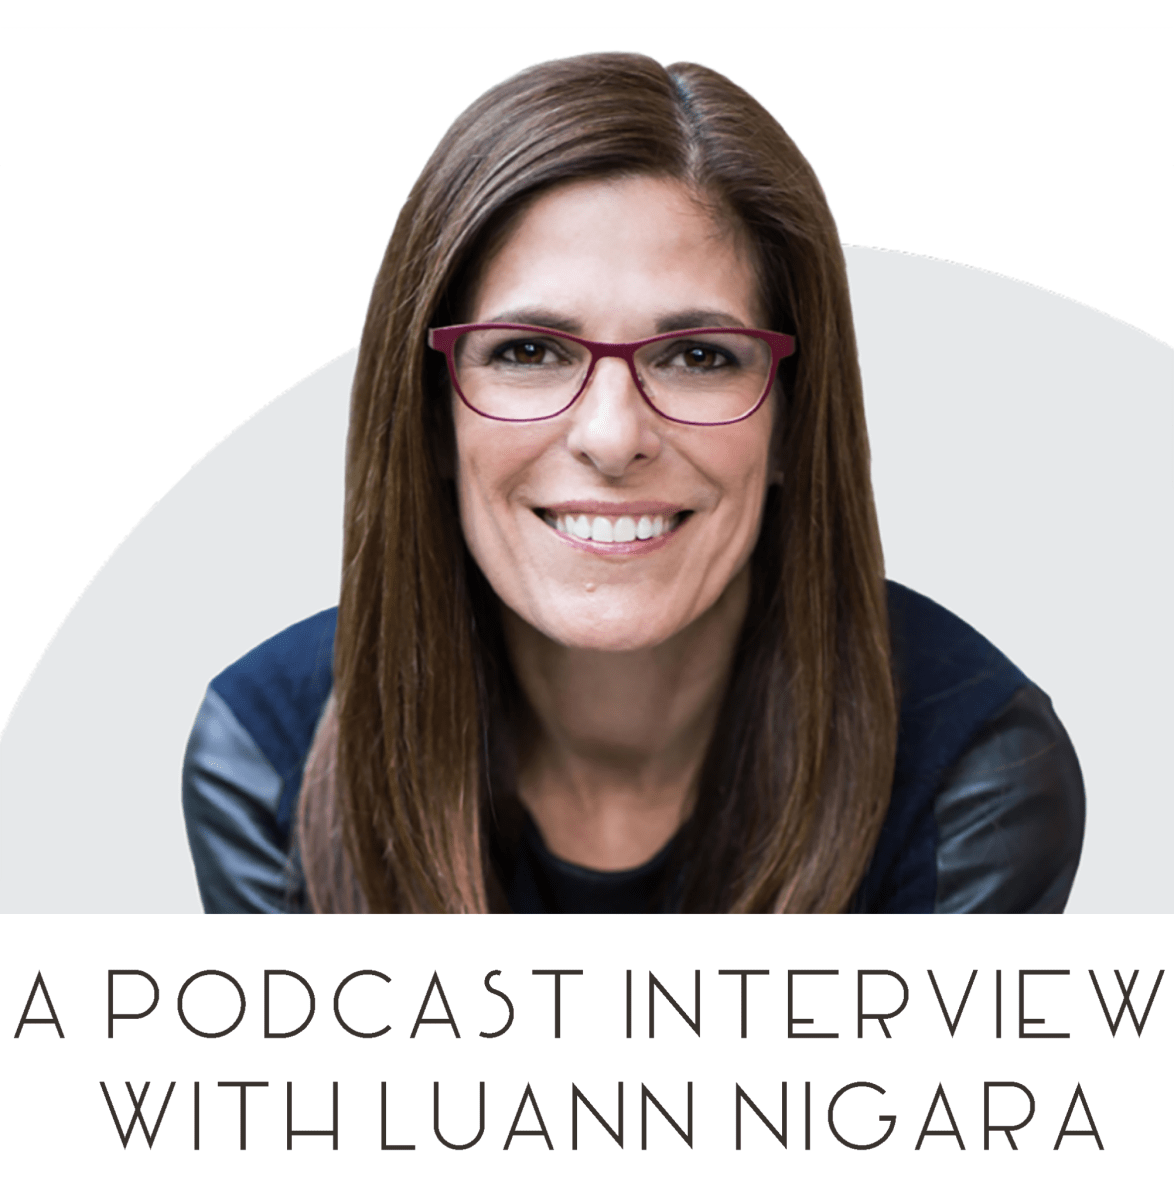 Cat's Podcast Interview with LuAnn Nigara